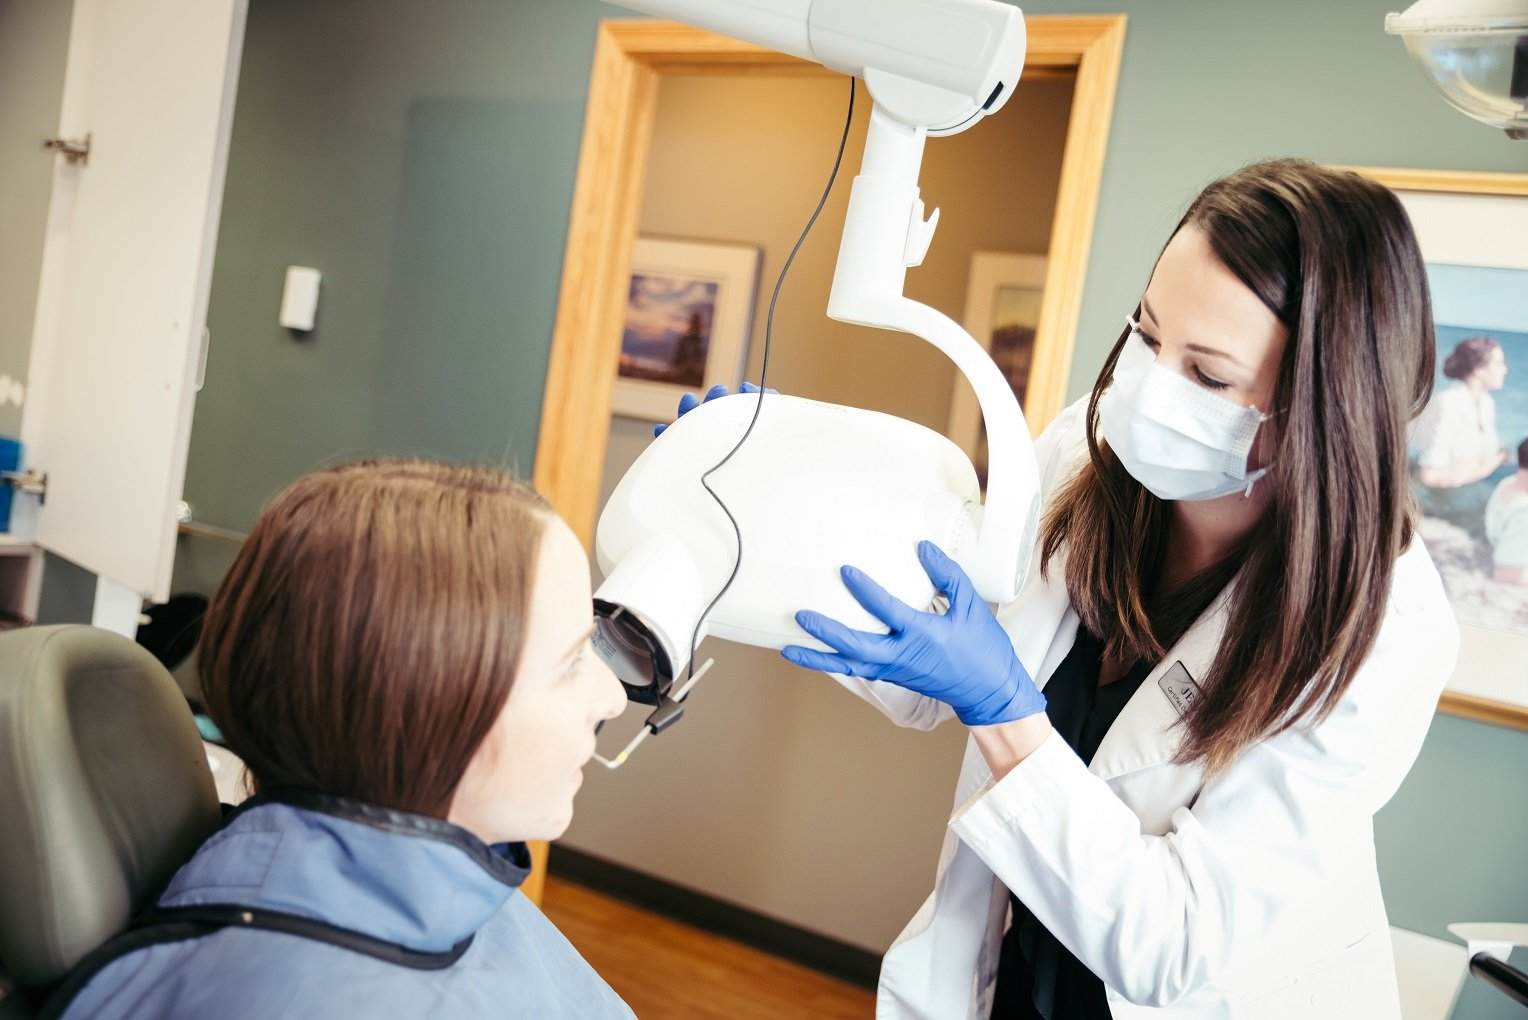 Photo 1 what is the process of getting veneers dental assistant taking x-rays